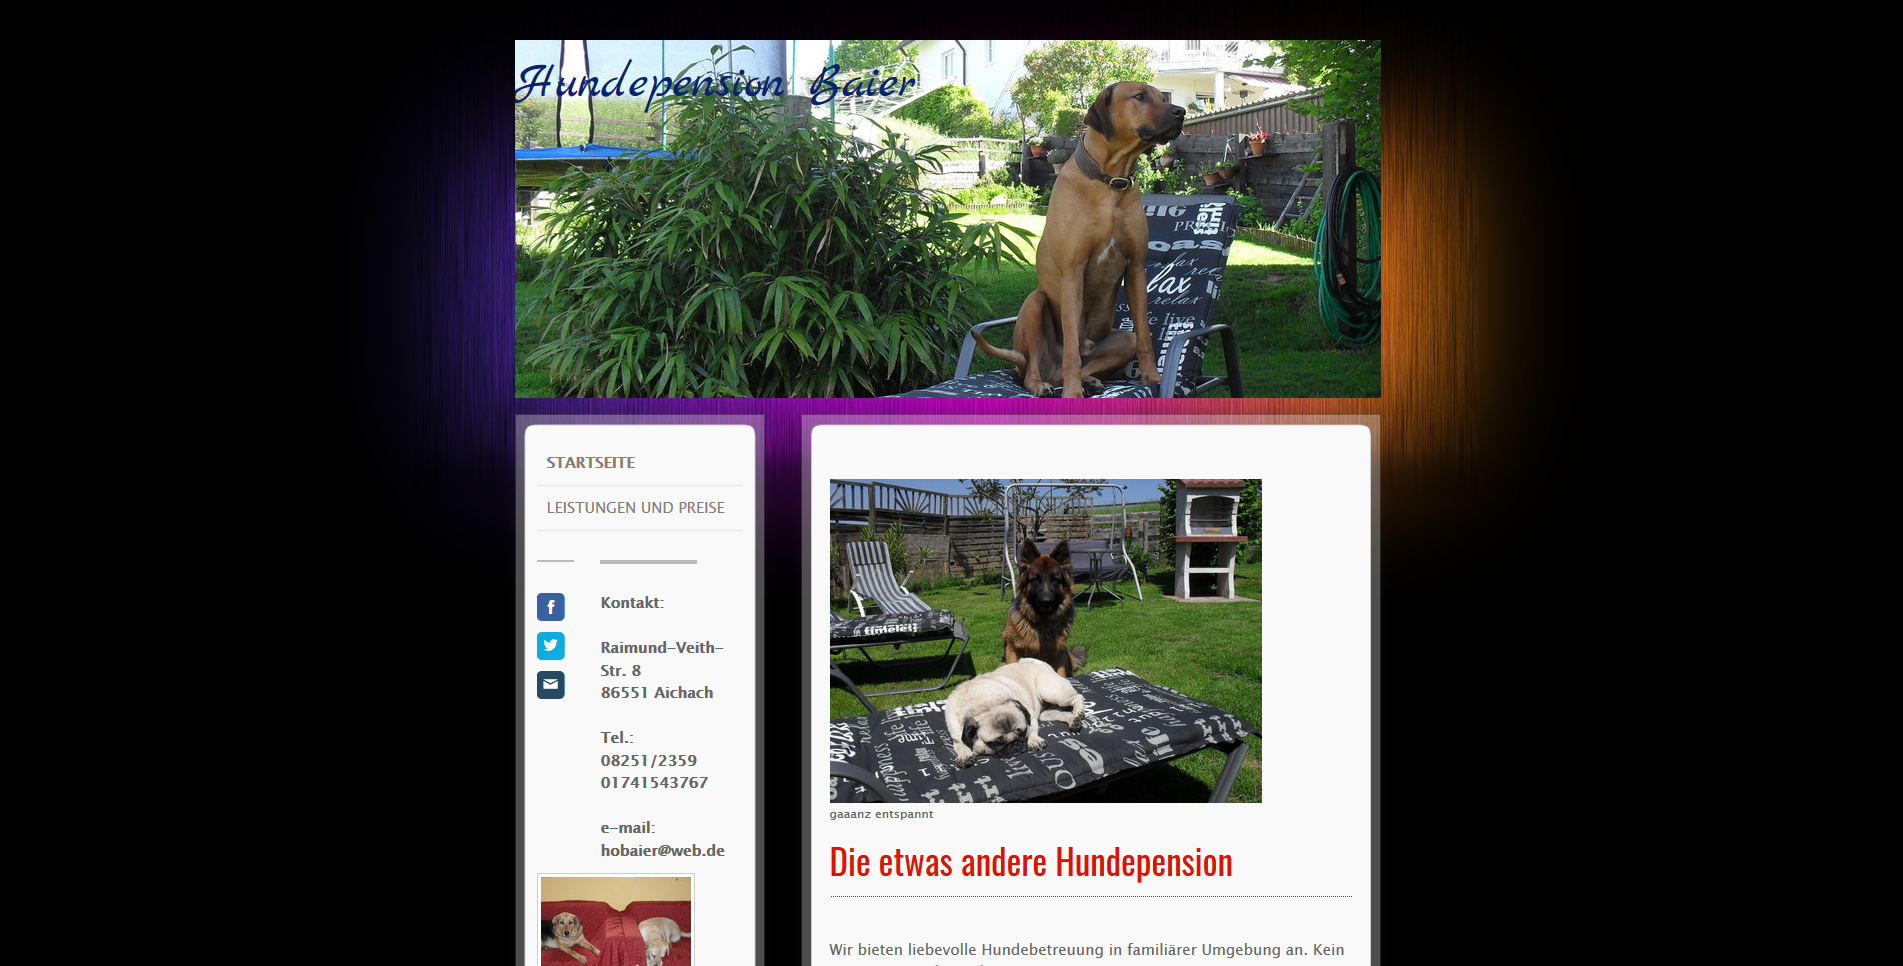 Hundepension Baier